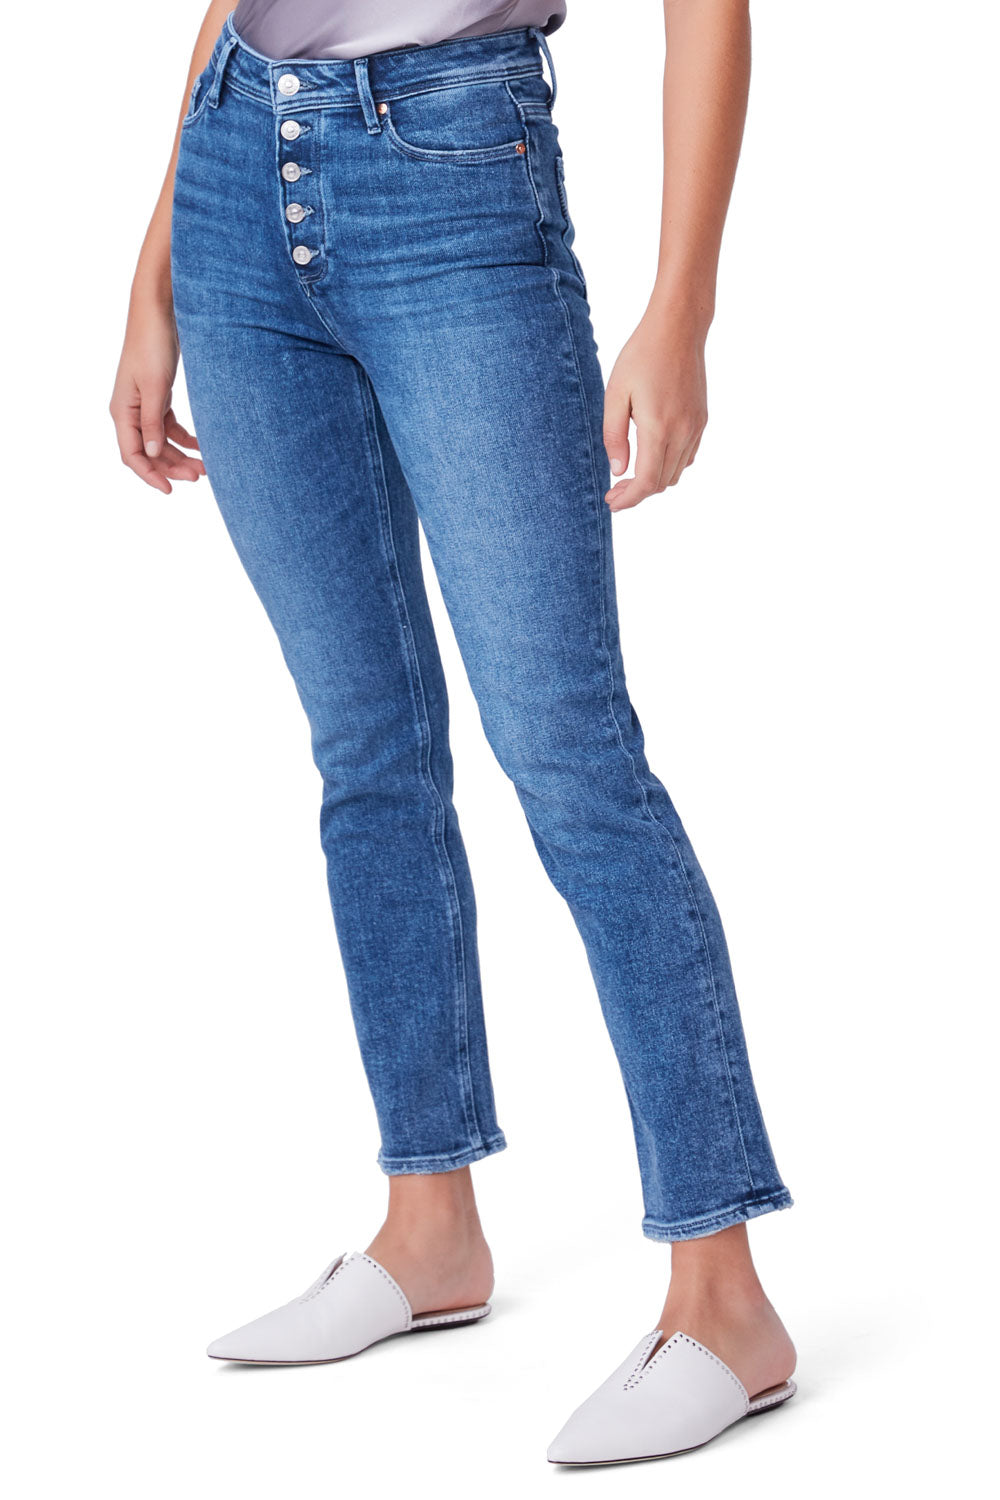 CINDY SKYSONG JEANS